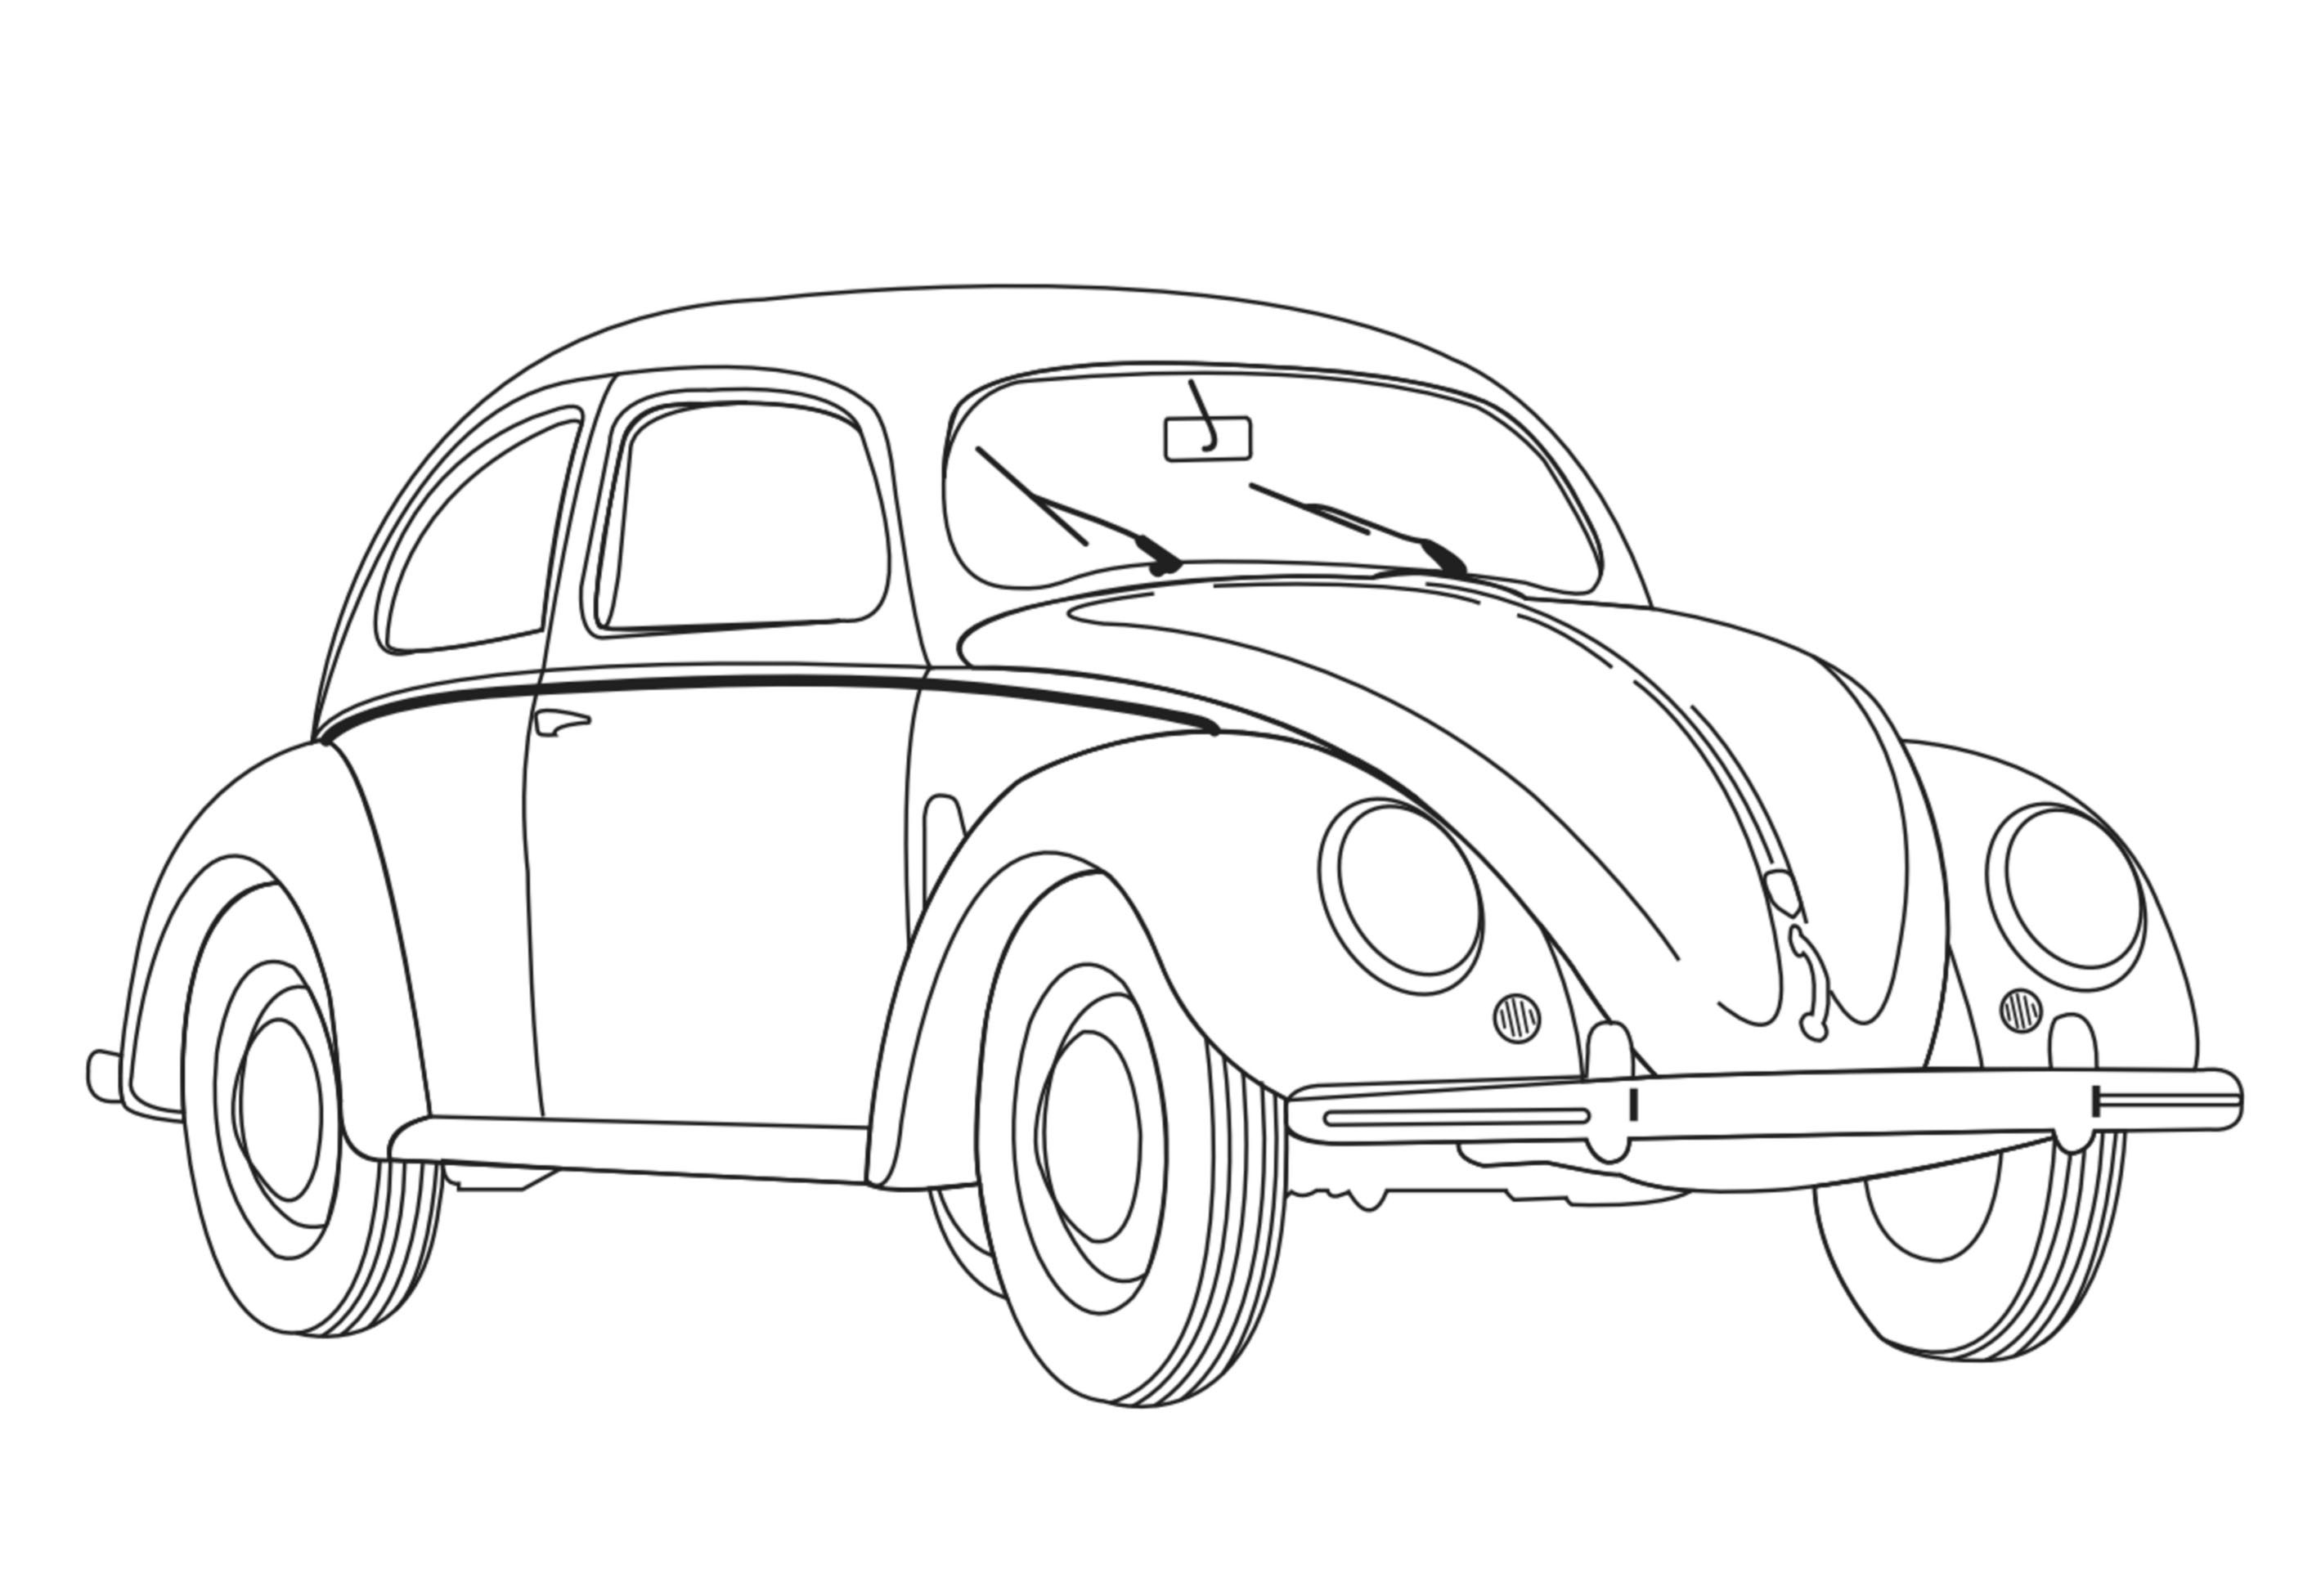 picture of a car to color car coloring pages best coloring pages for kids color to of picture car a